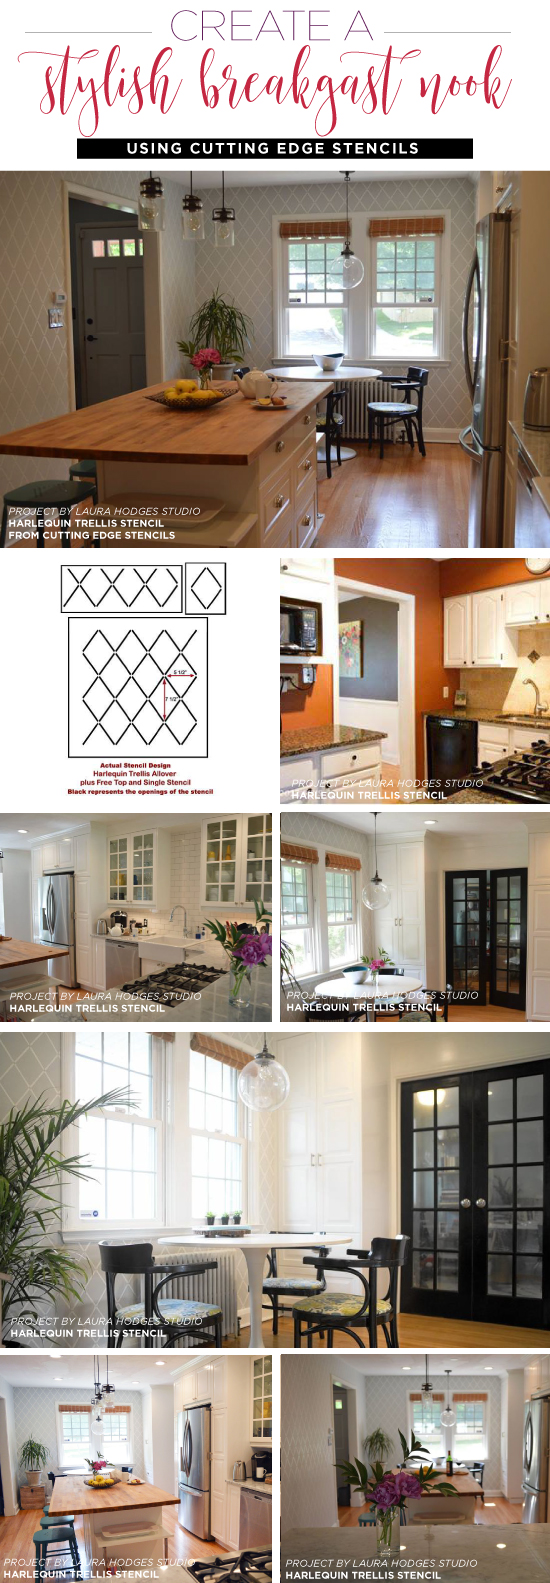 Cutting Edge Stencils shares how to add personal style and fun decor to your kitchen and adjoining eating area using a stencil pattern. http://www.cuttingedgestencils.com/trellis-stencil-harlequin.html